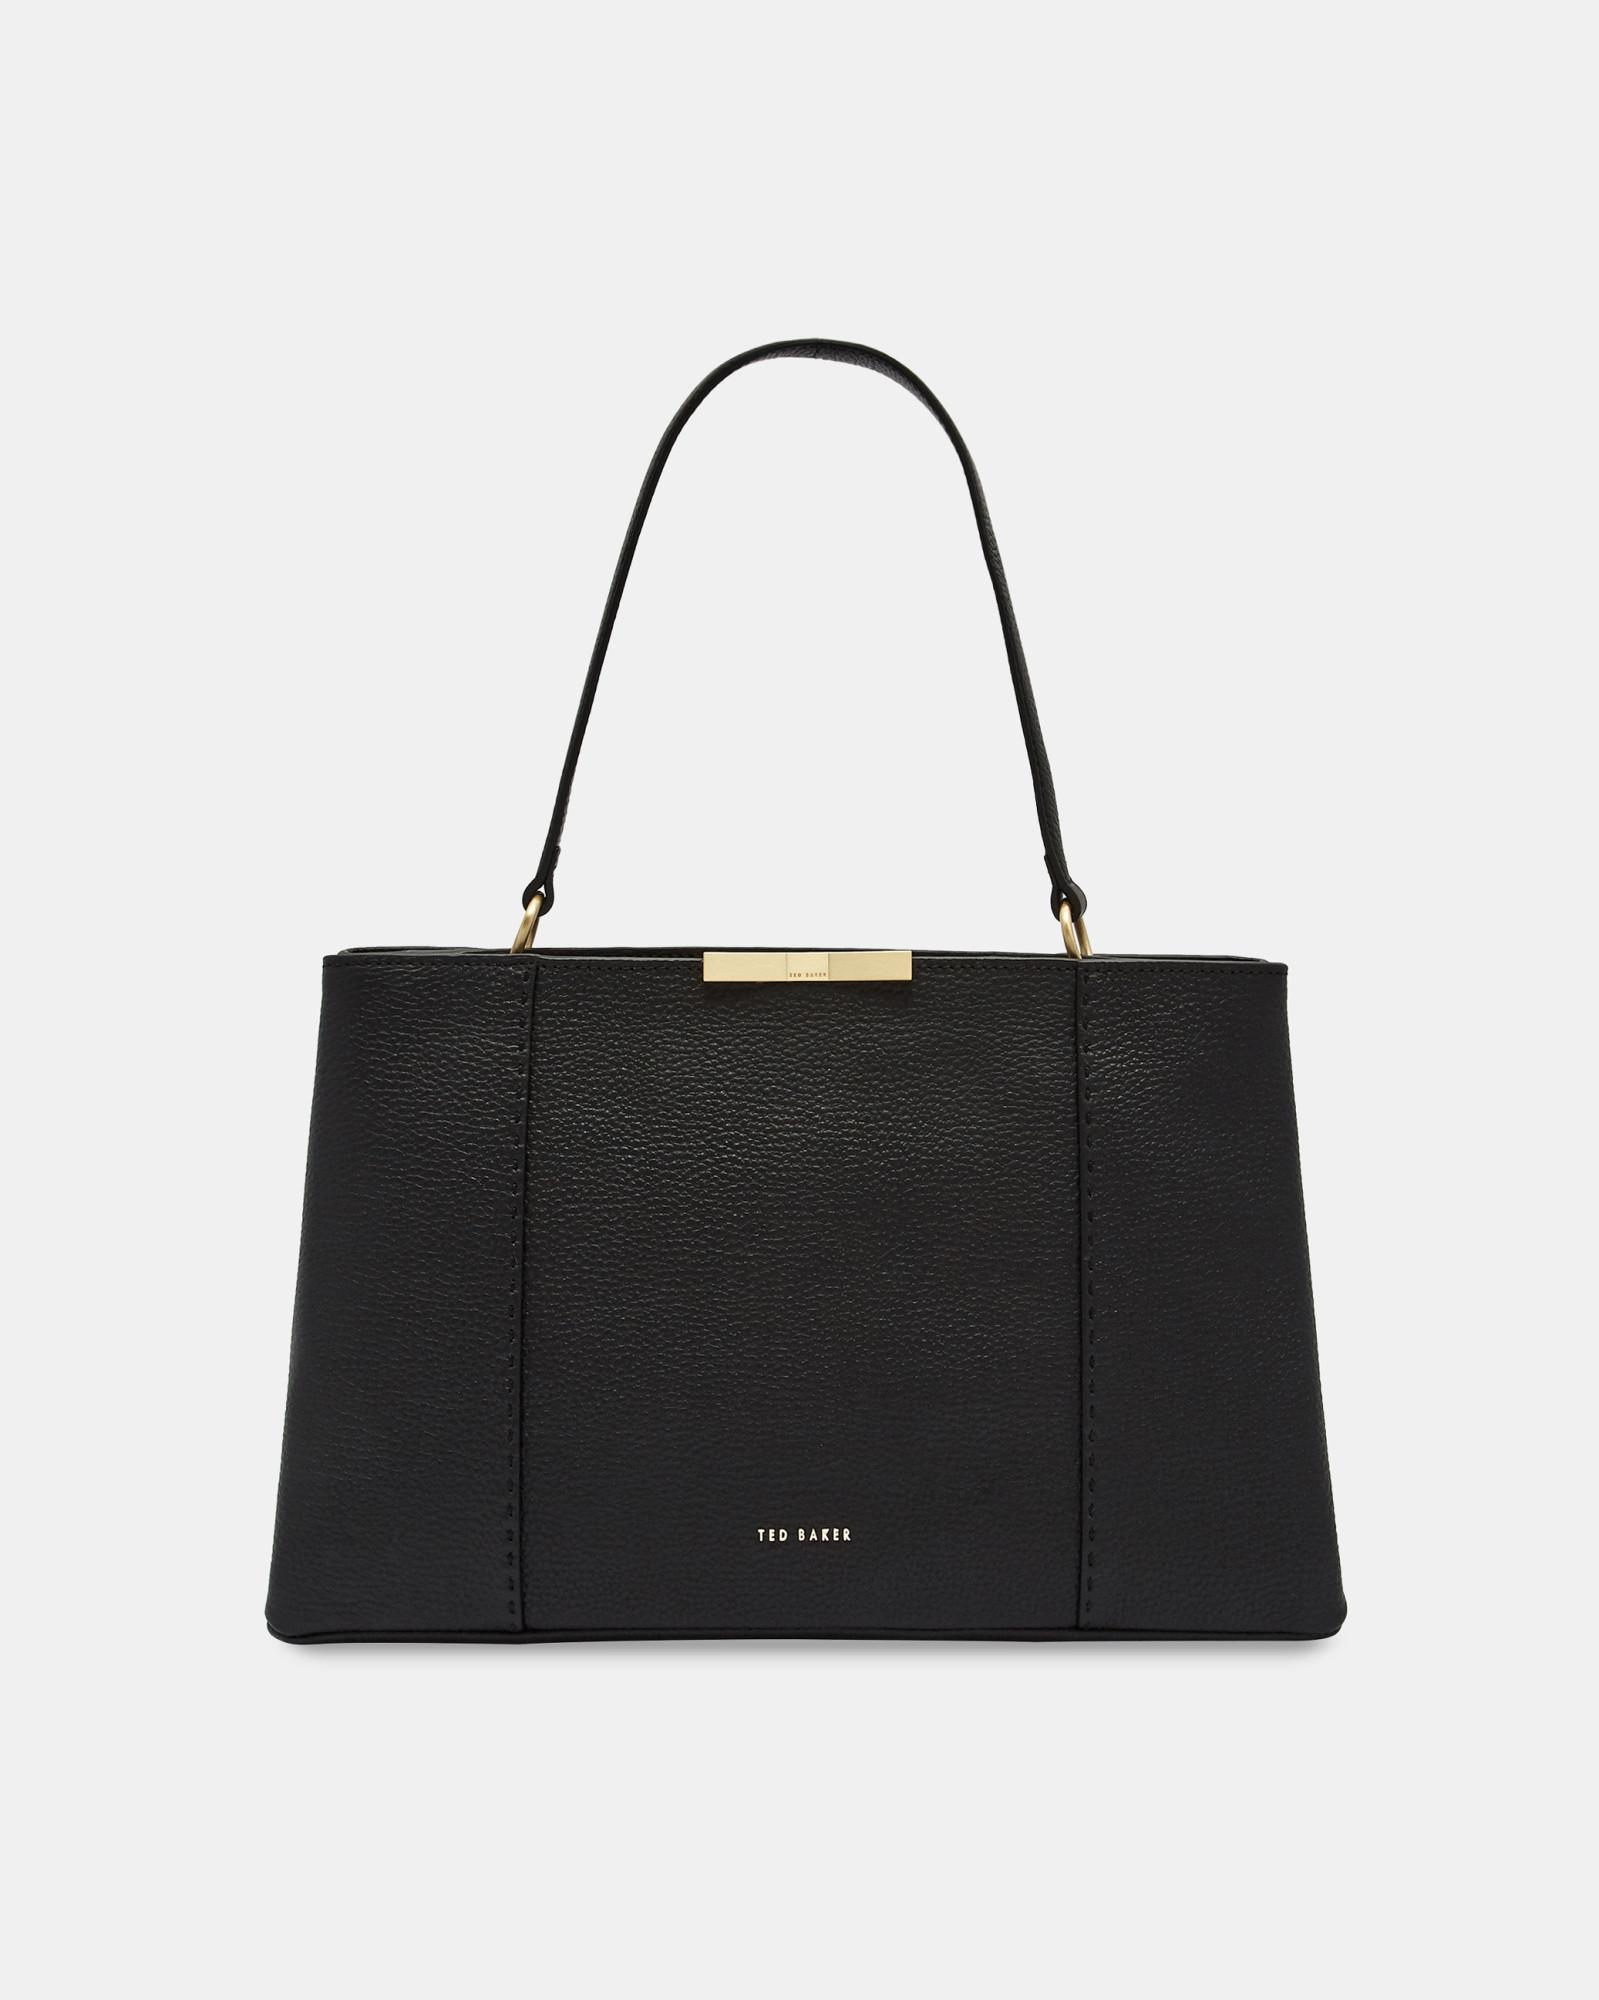 cedd2b80951e3 Ted Baker - Black Faceted Bow Leather Tote Bag - Lyst. View fullscreen